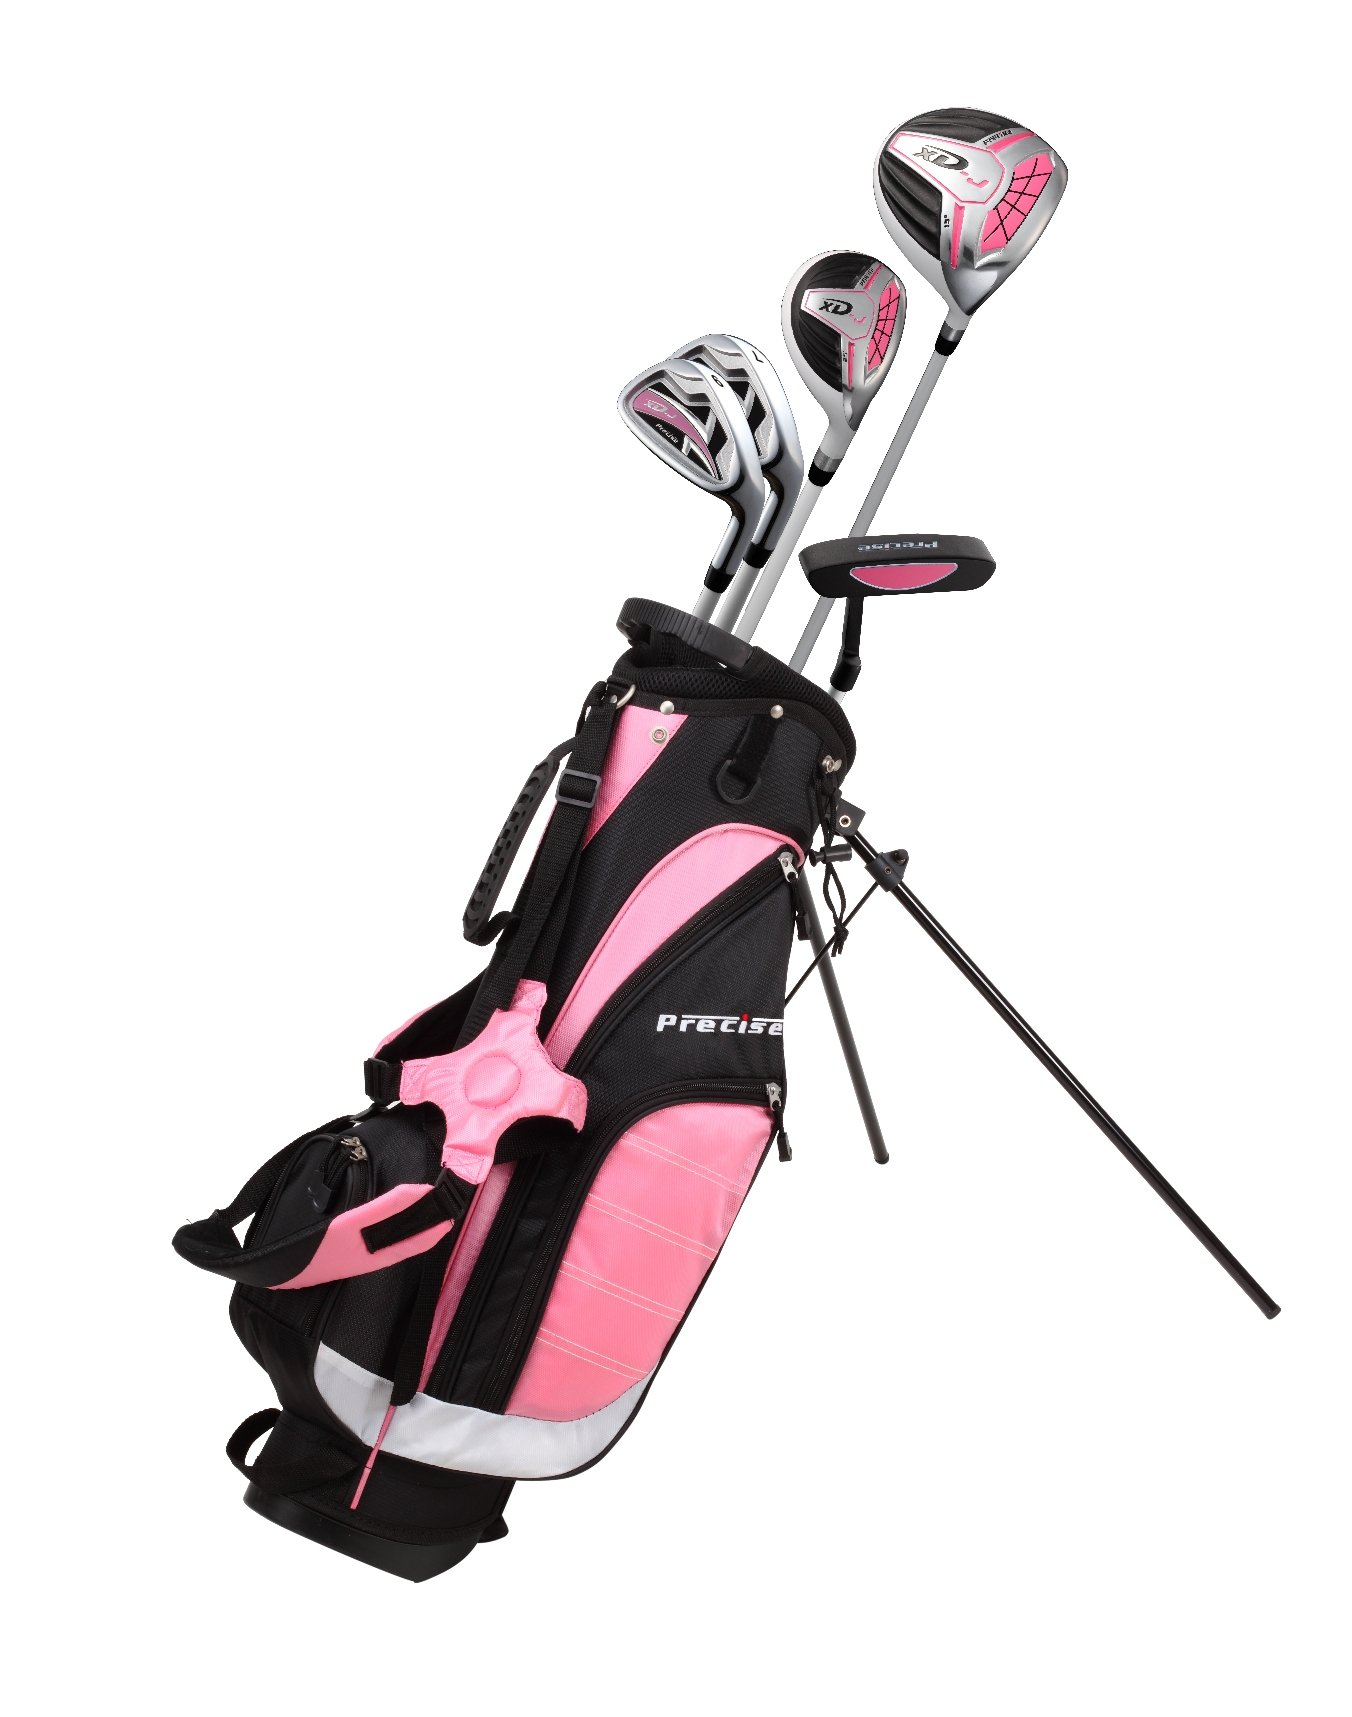 Precise XD-J Junior Complete Golf Club Set for Children Kids - 3 Age Groups Boys & Girls - Right Hand & Left Hand! (Pink Ages 6-8, Left Hand)